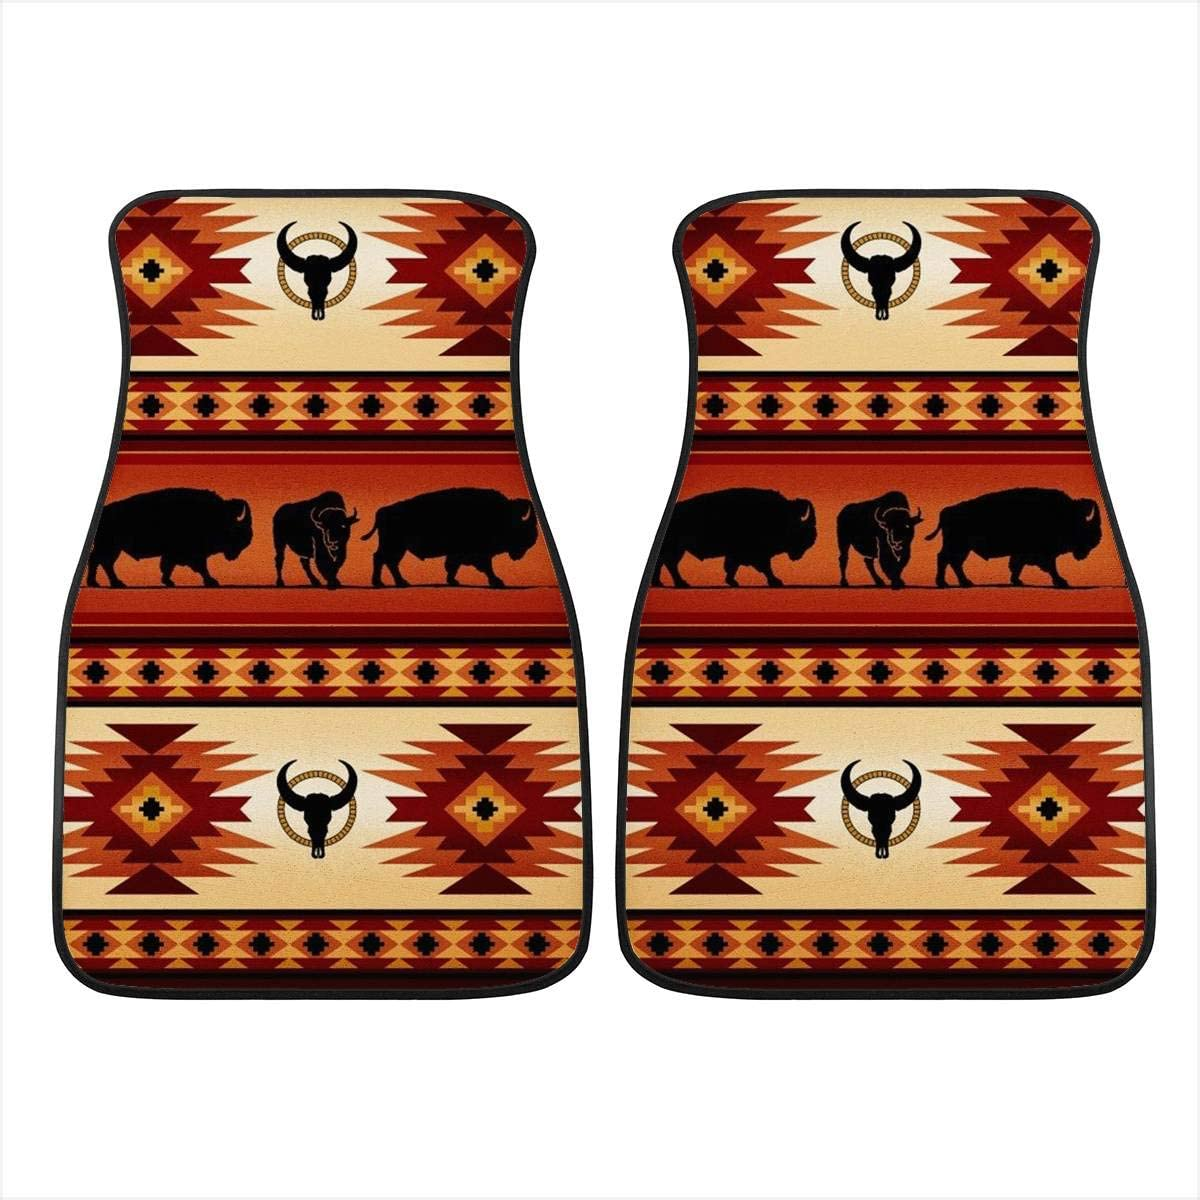 INSTANTARTS Mens Women Ethnic Horse Print Vintage Cars Decor Universal Fit Car Floor Mats for SUV Sedan Trucks